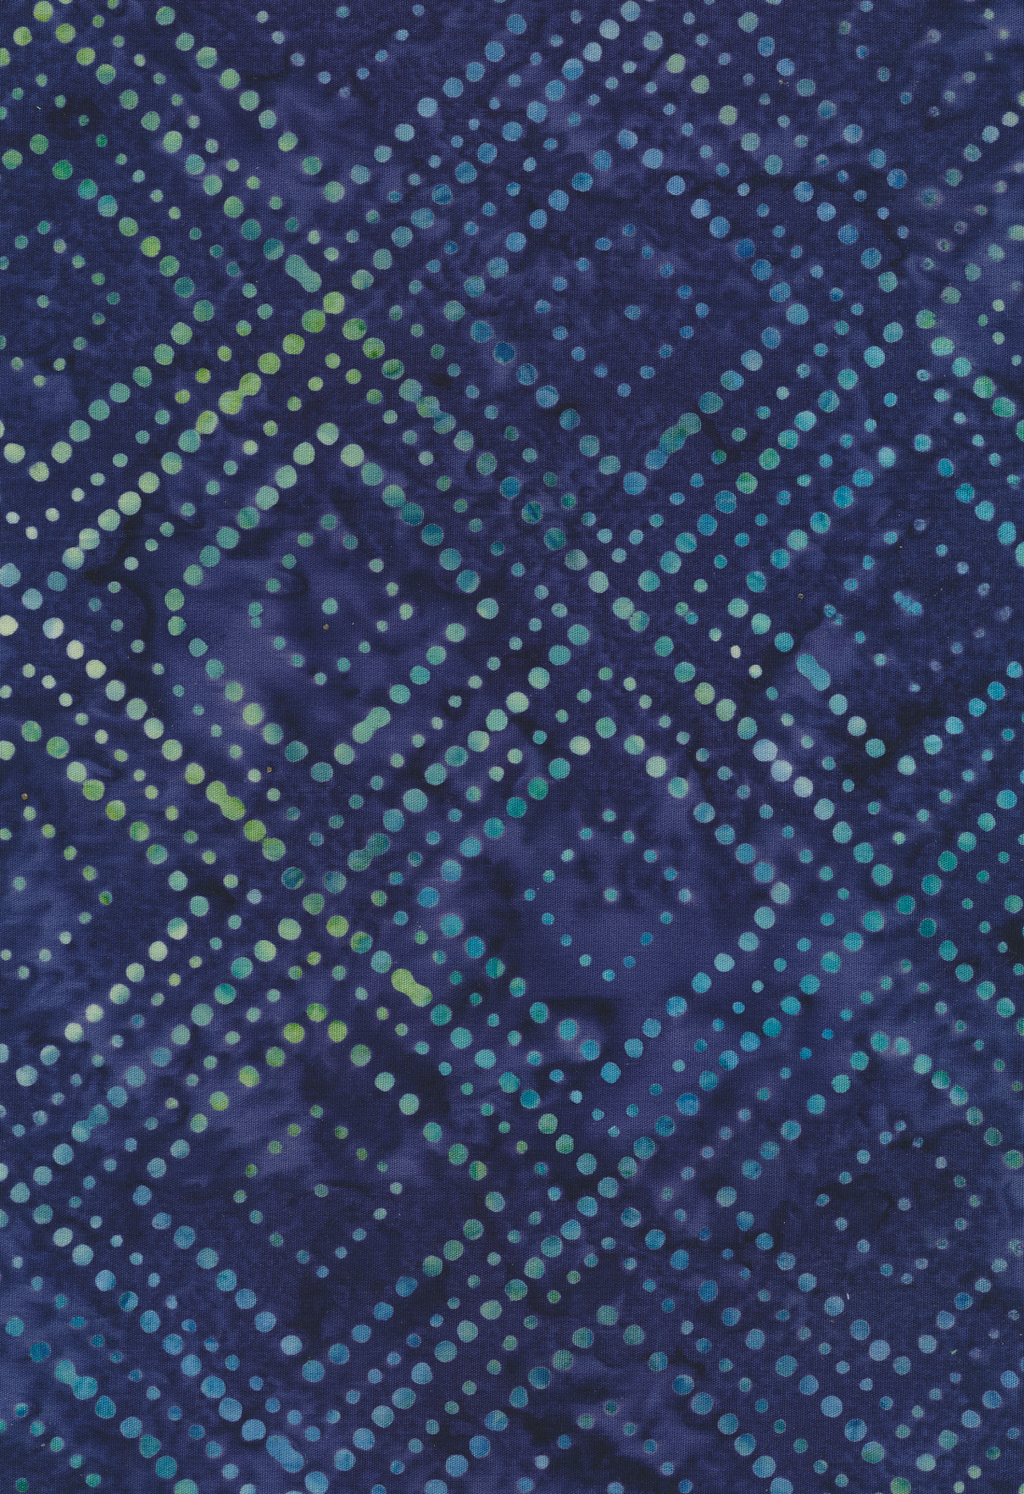 "Blue Squares on Point 44"" Batik by Majestic Batik, Twilight 511"